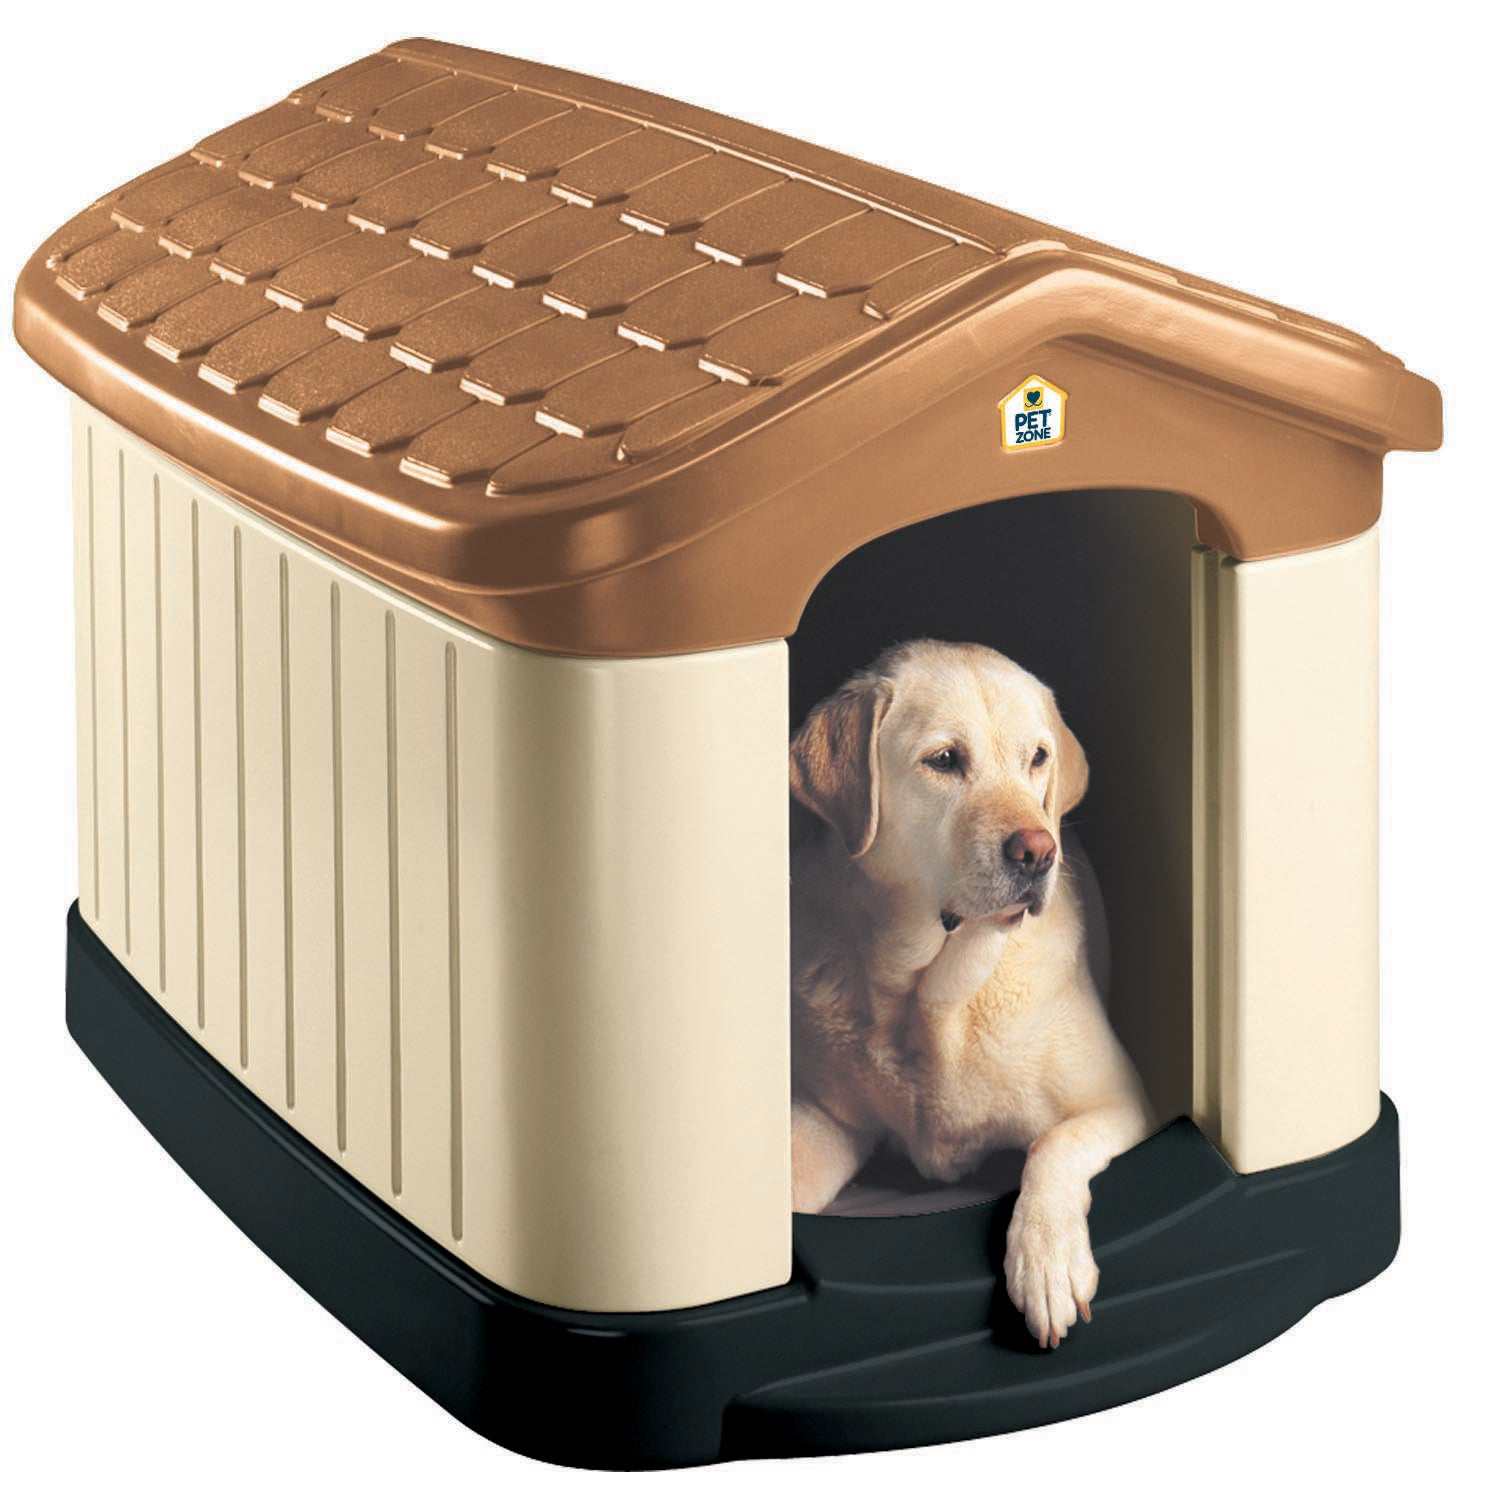 Shop Tuff N Rugged Large All Weather Double Insulated Dog House Free Shipping Today Overstock Com 3498965